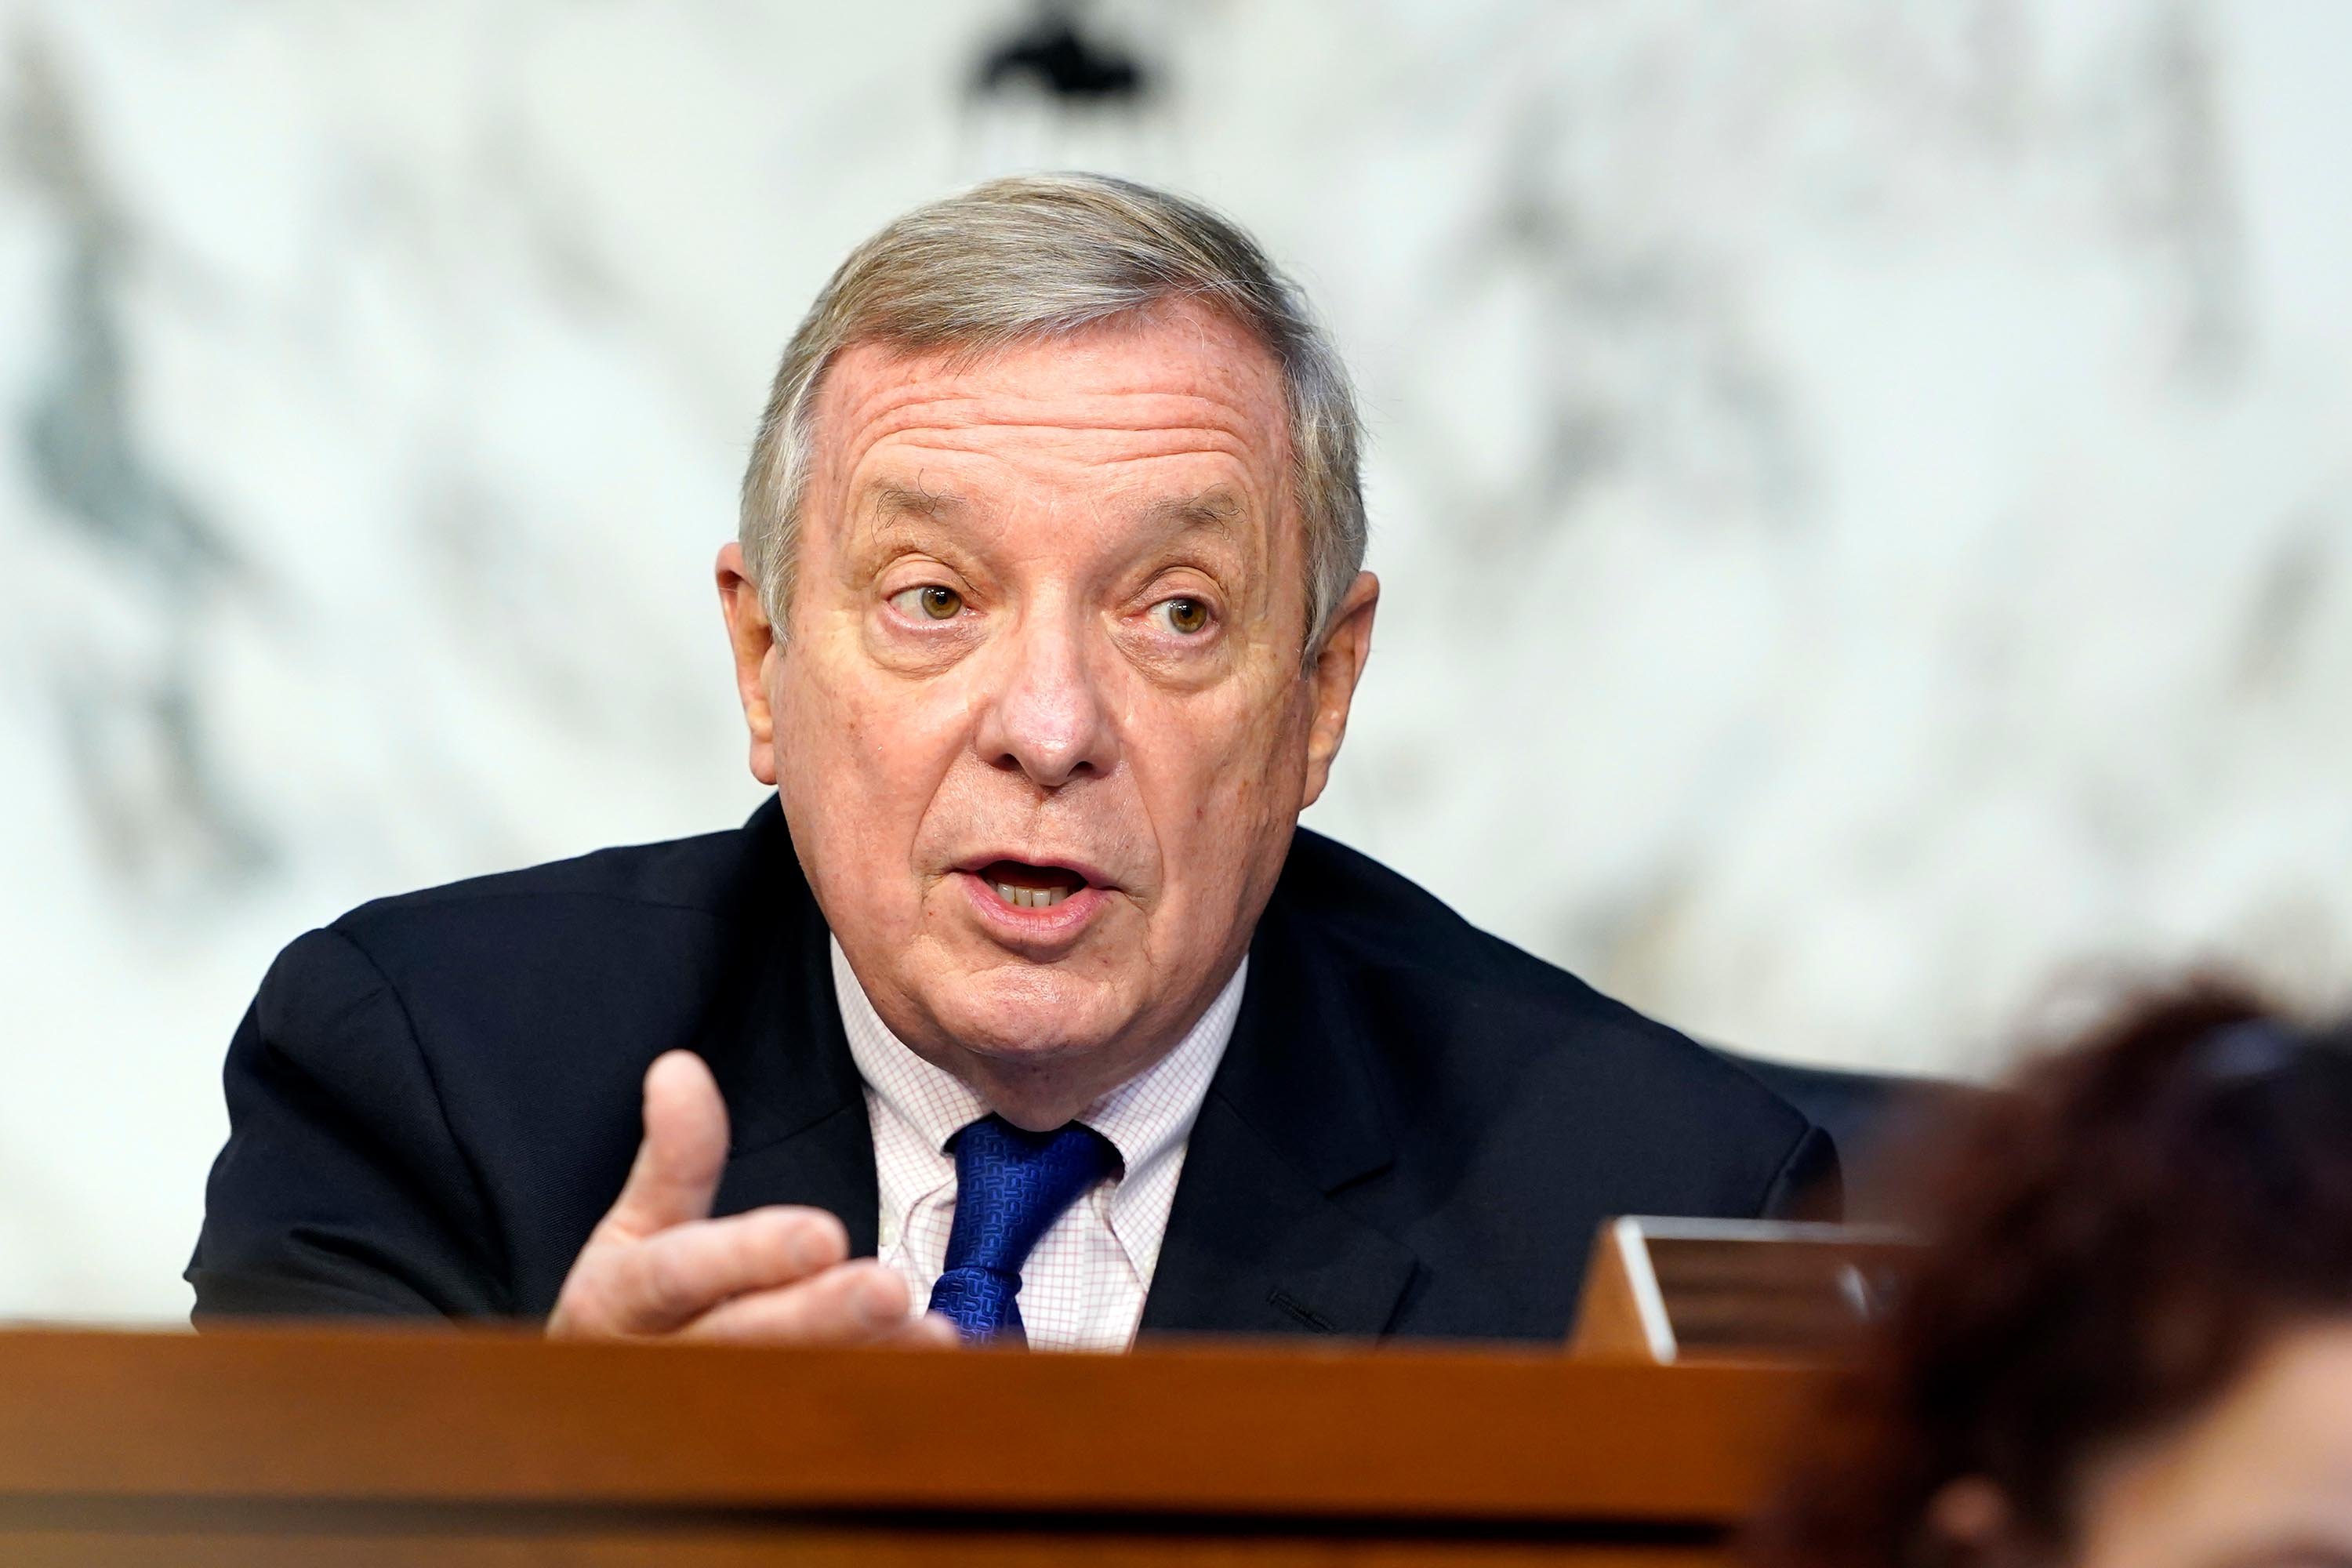 Sen. Dick Durbin speaks before the Senate Judiciary Committee on the fourth day of hearings on Supreme Court nominee Amy Coney Barrett, Thursday, October 15.